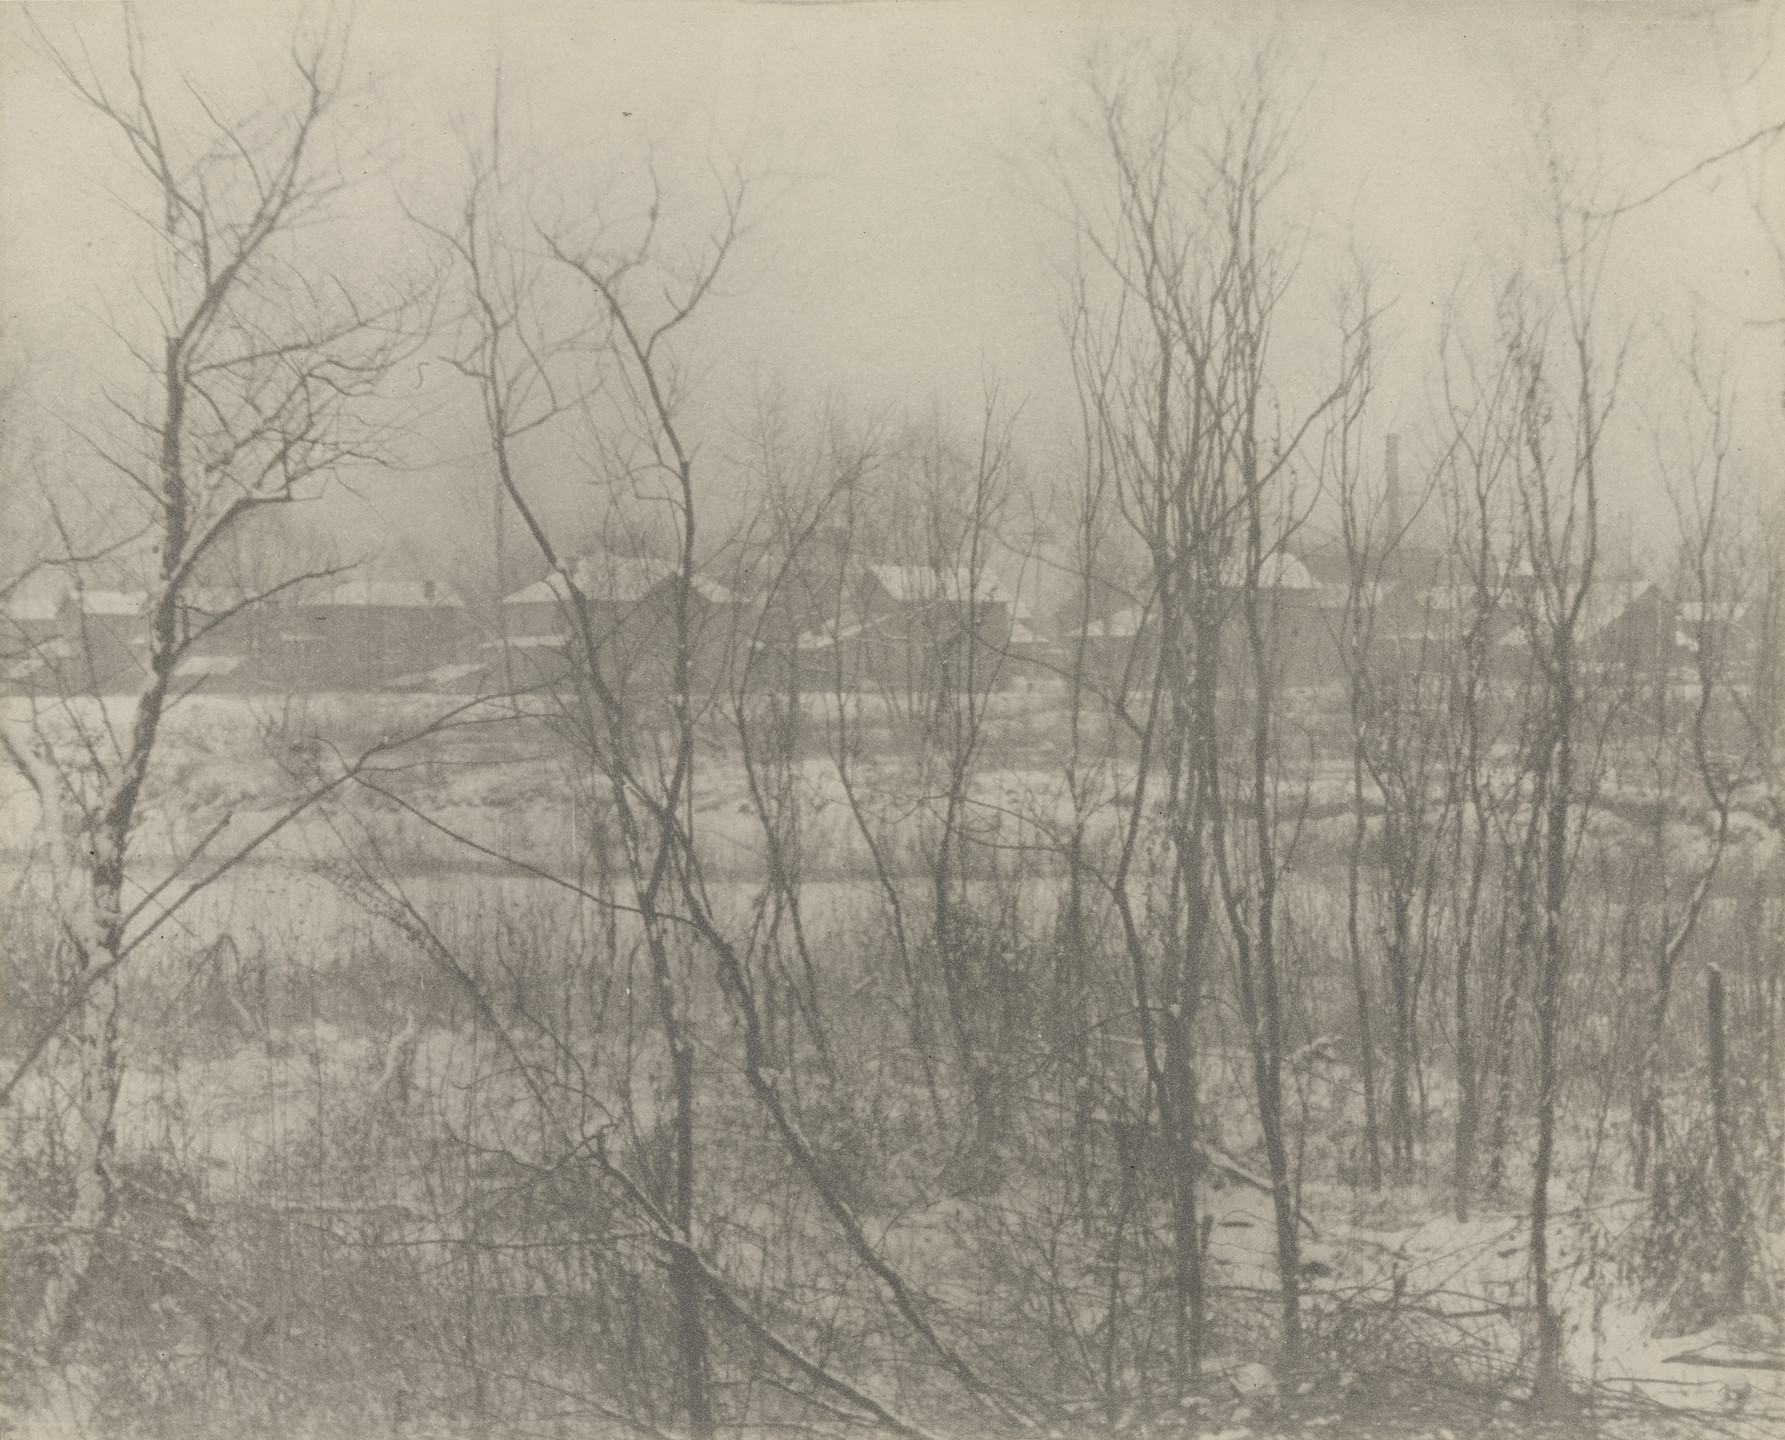 Clarence H. White. Factory Town in Winter. 1906